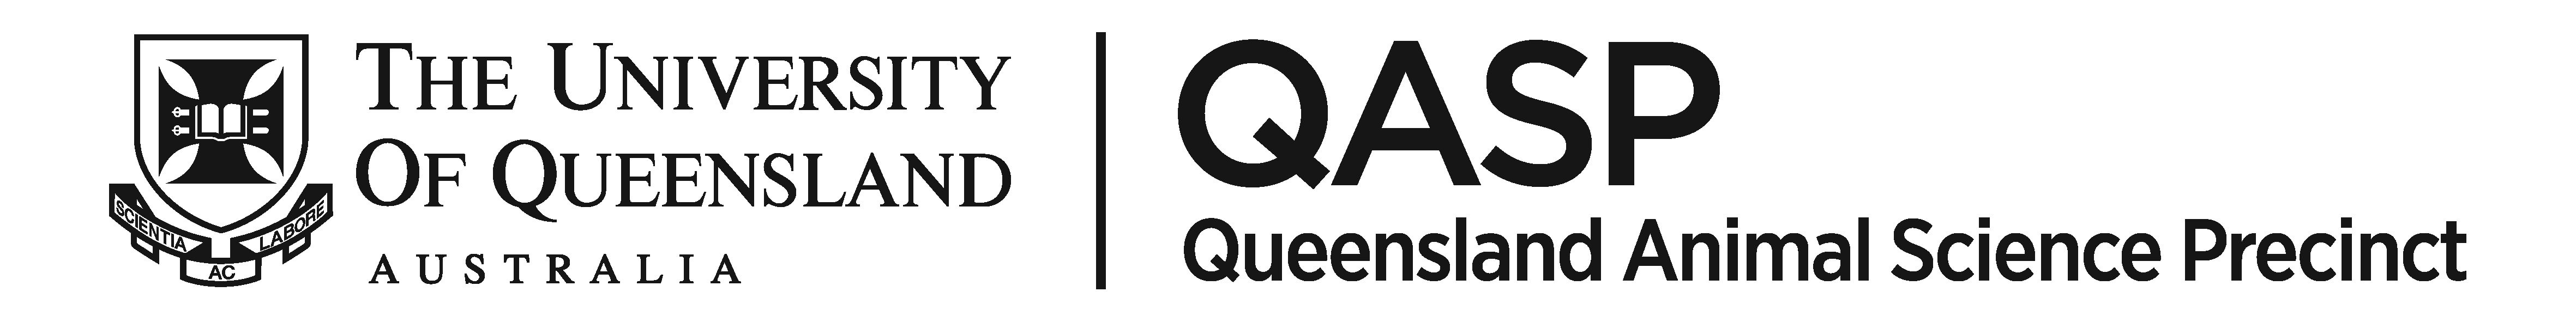 UQ-QASP treatment